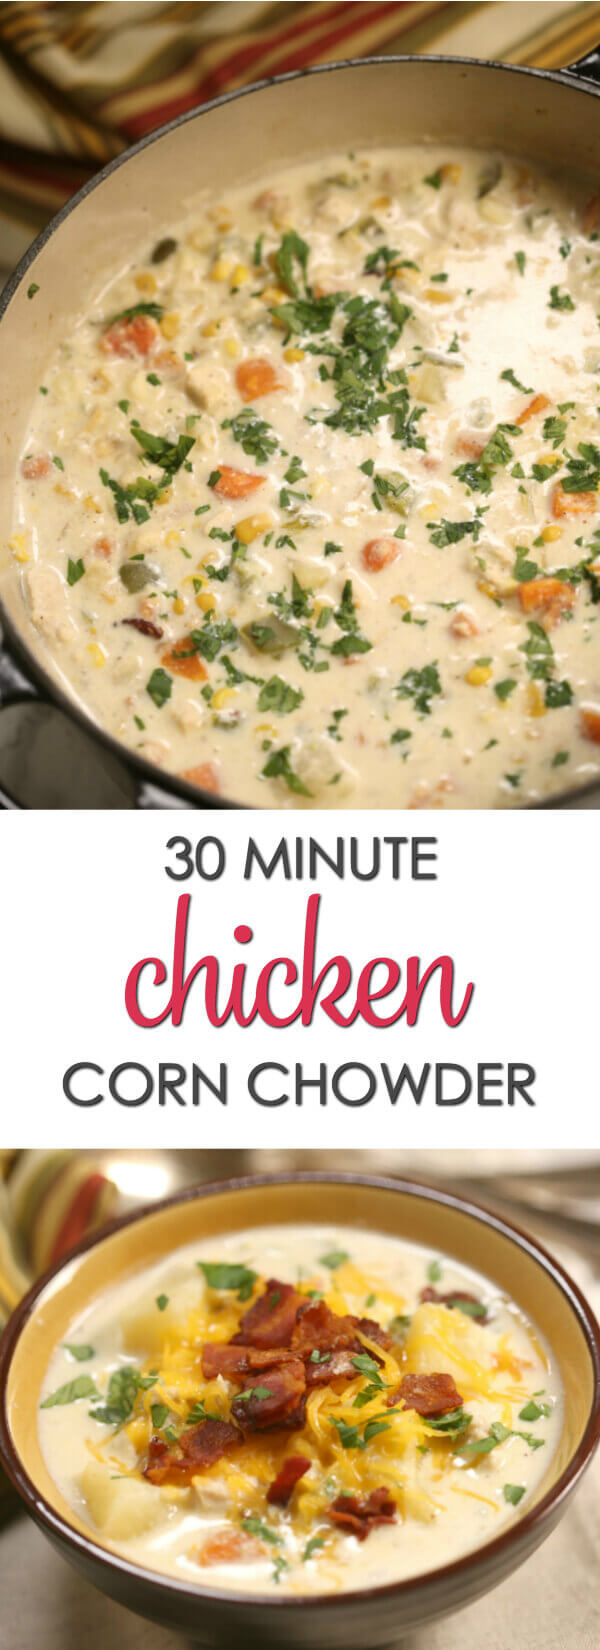 This Easy Chicken Corn Chowder recipe is thick, rich and hearty. Best of all, it's an easy to make in 30 minutes. Perfect for a cold, wintry day. #itisakeeper #recipe #soup